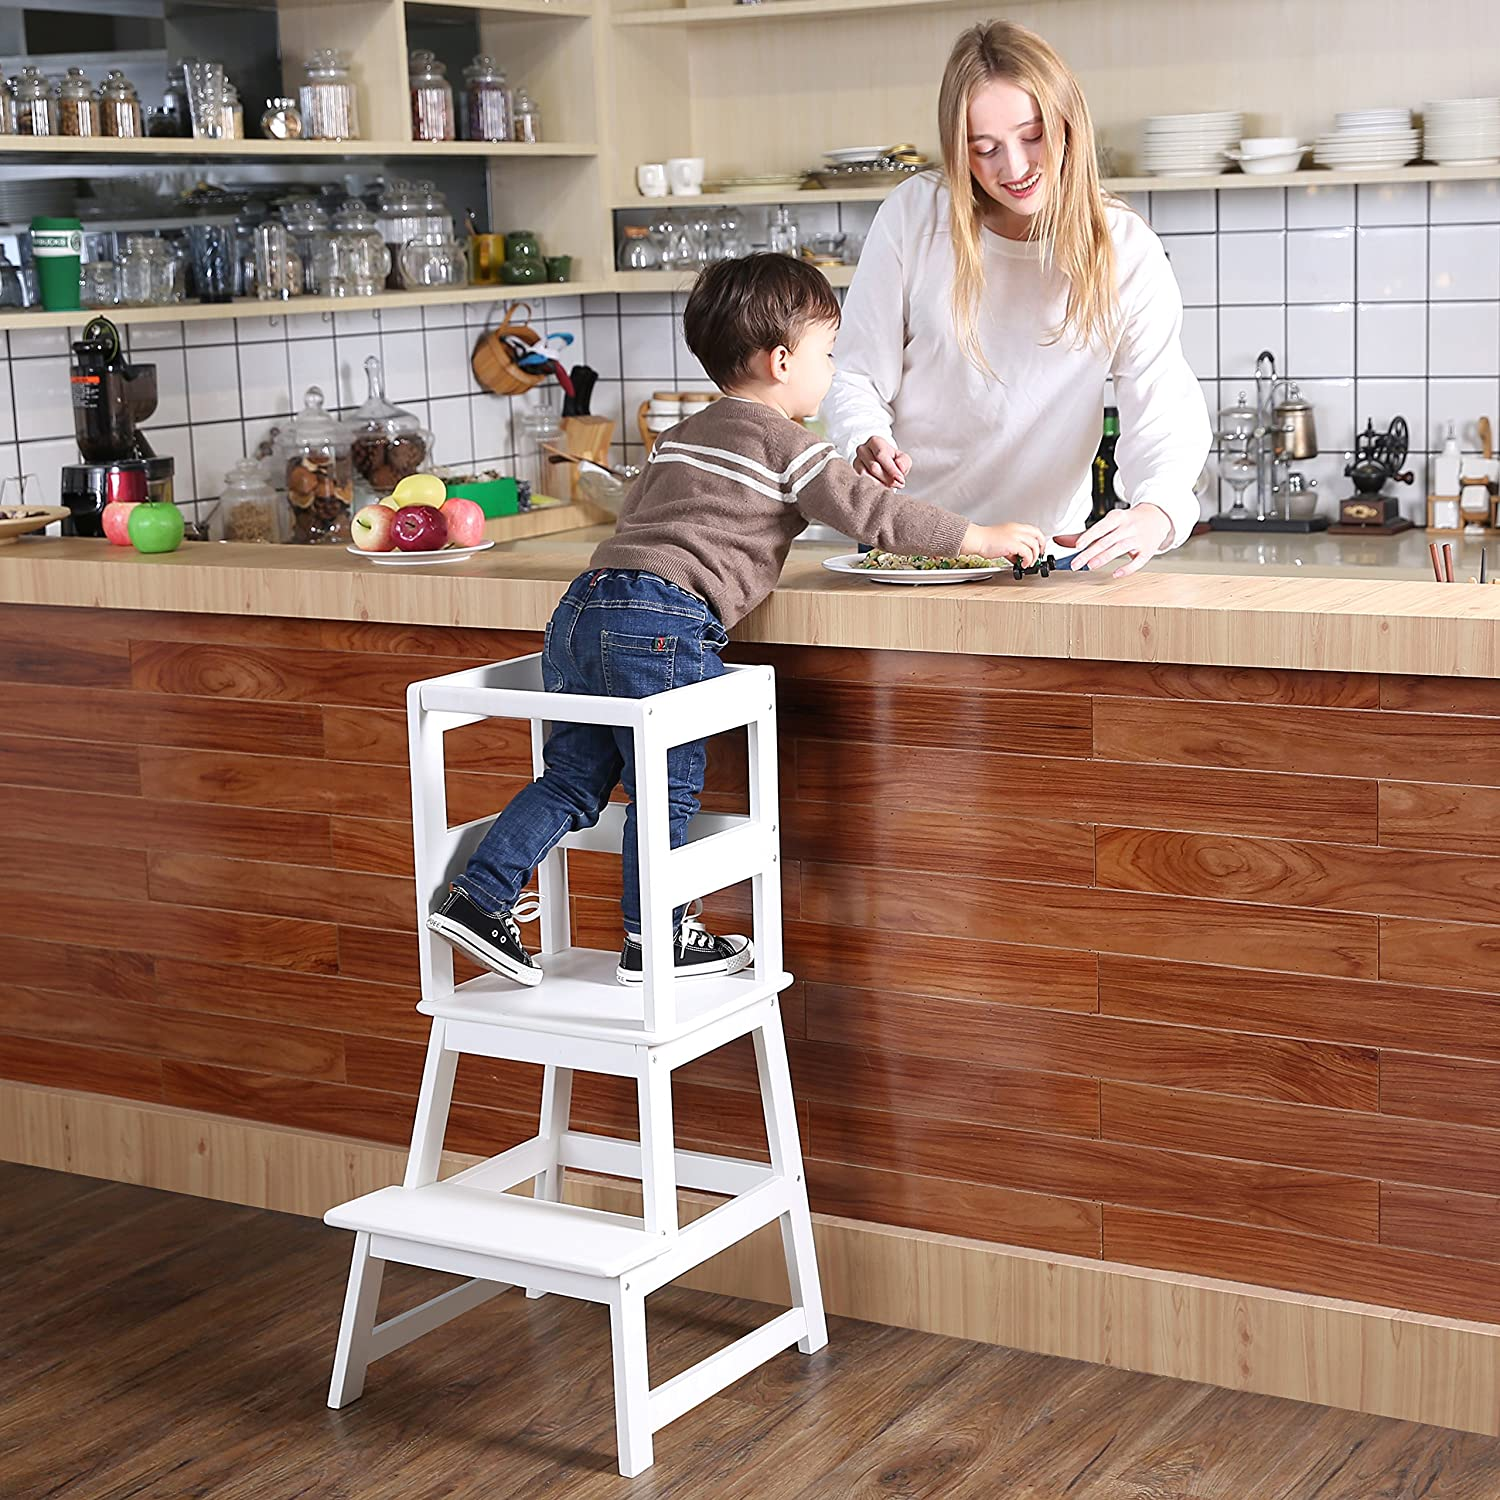 SDADI Kids Kitchen Step Stool with Safety Rail- for Toddlers 18 Months and Older, White LT01W